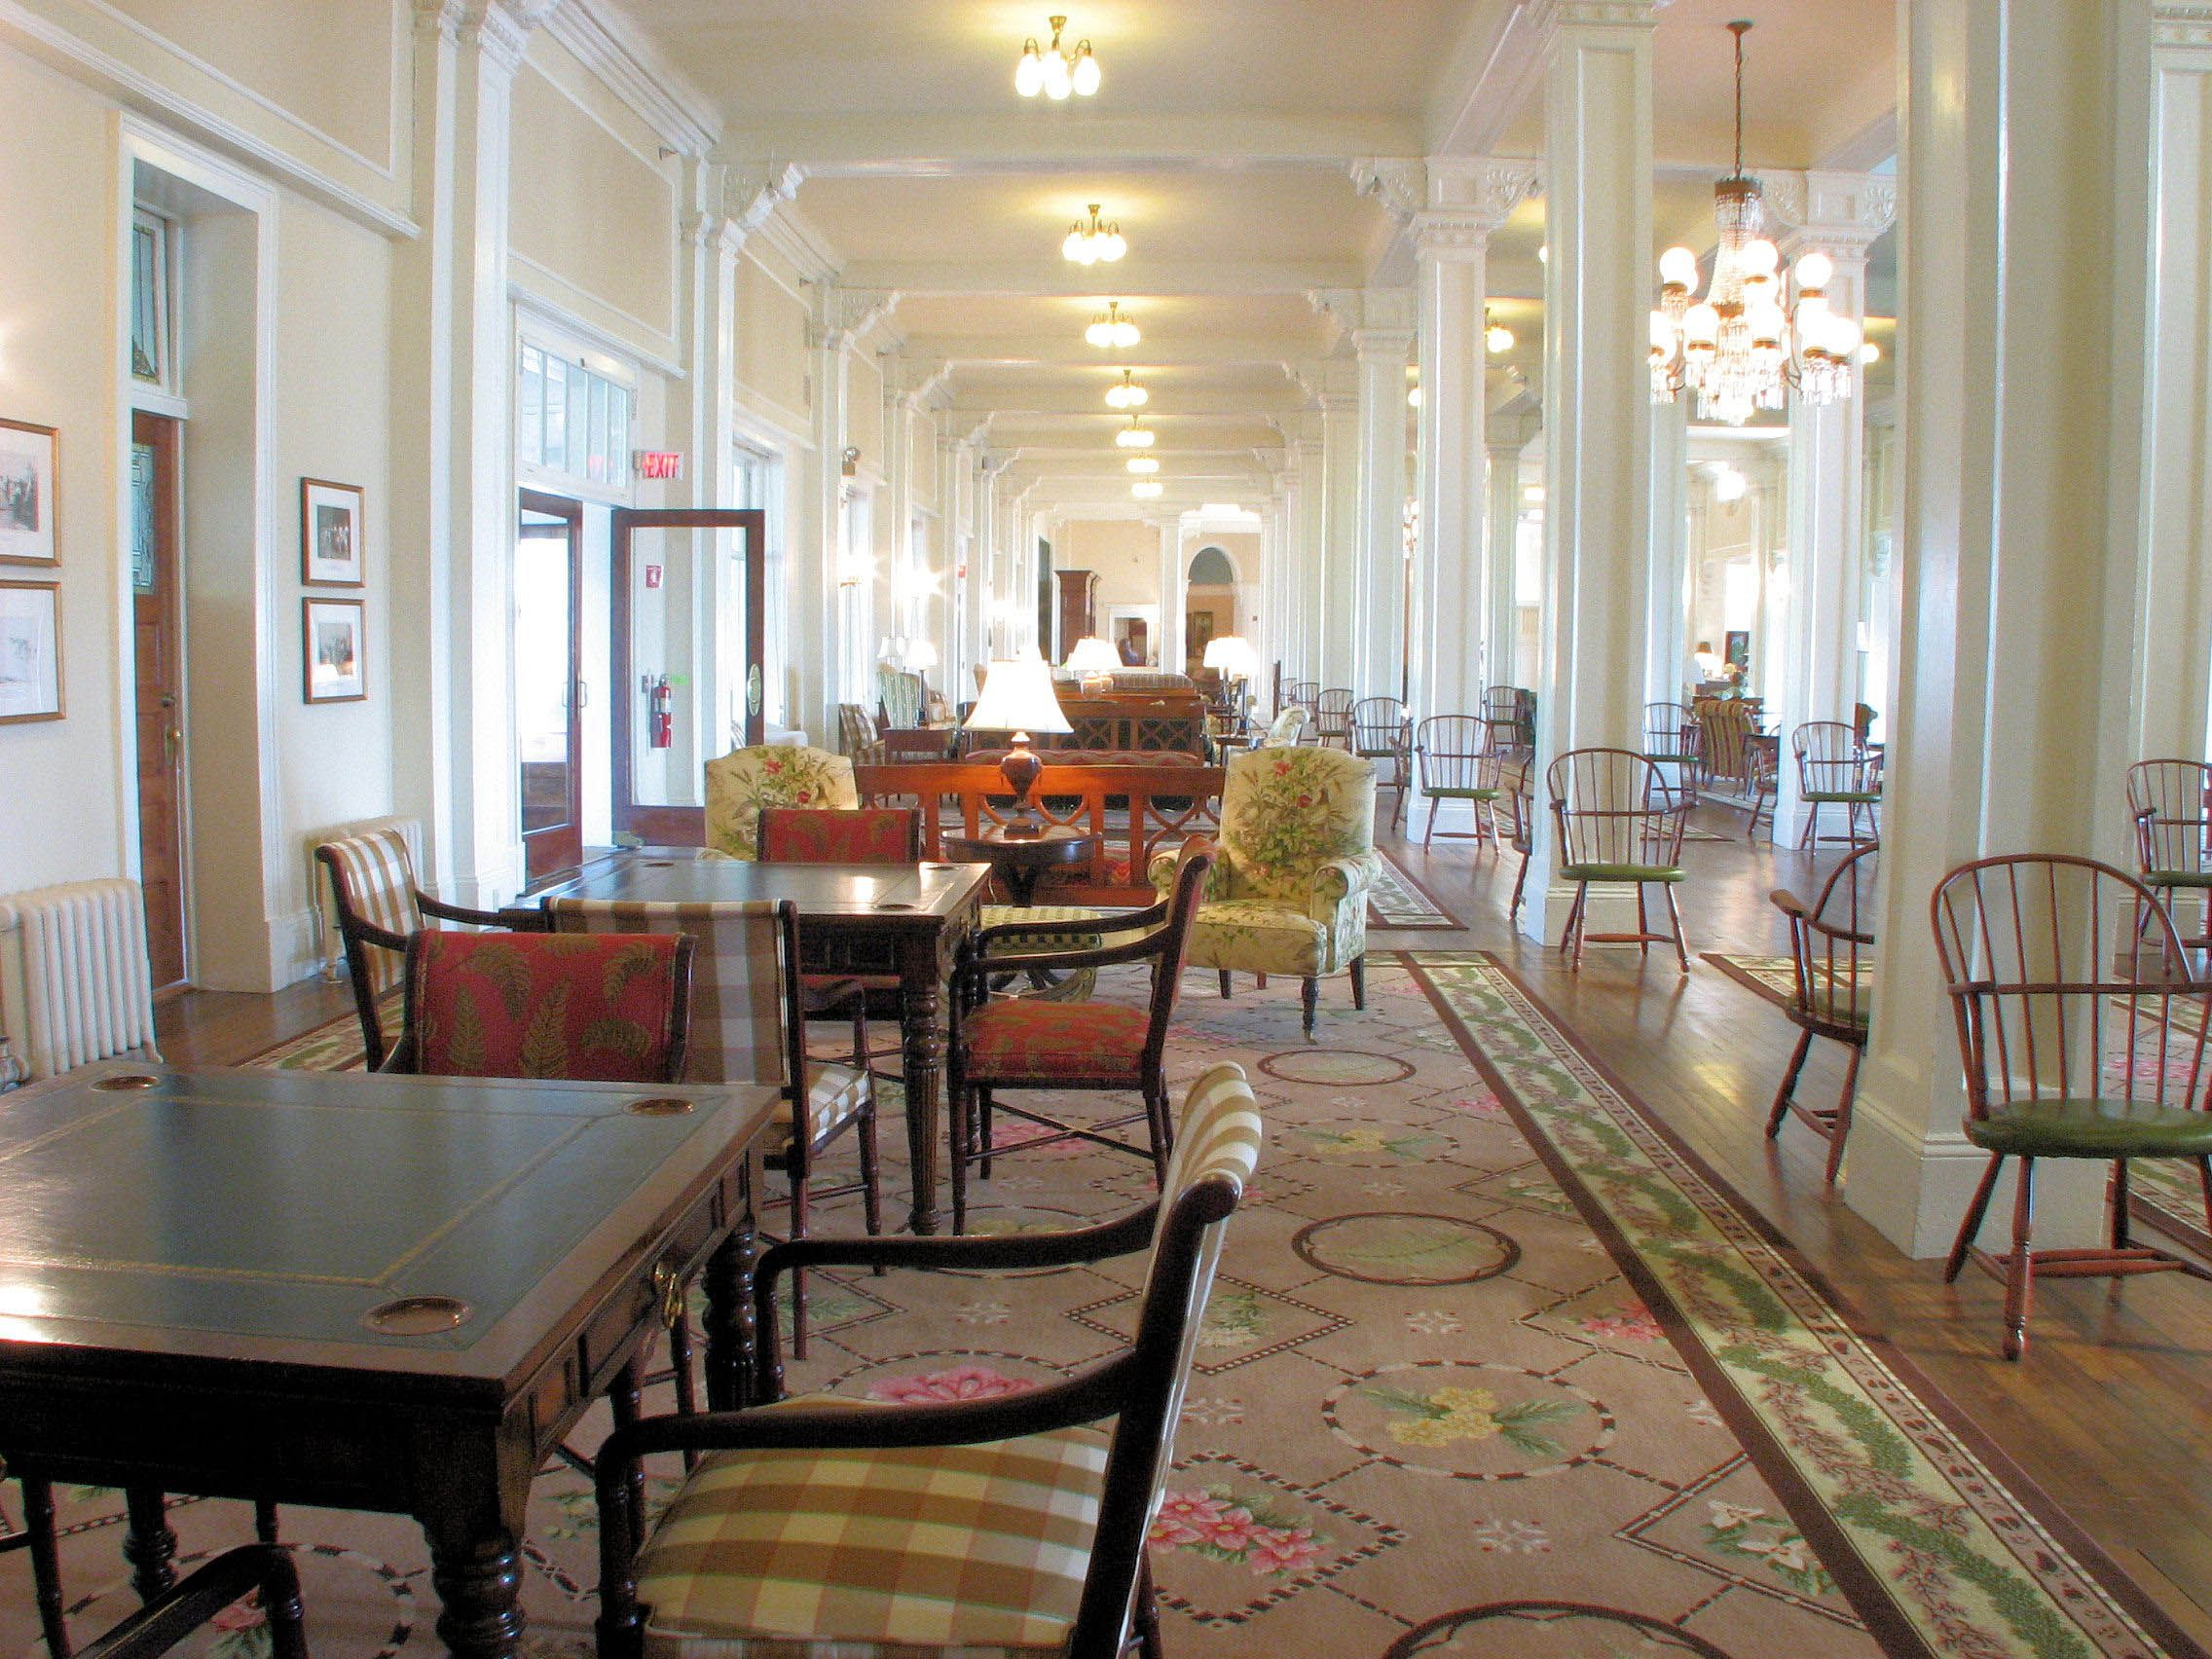 Romantic destinations bretton woods new hampshire mount washington hotel interior